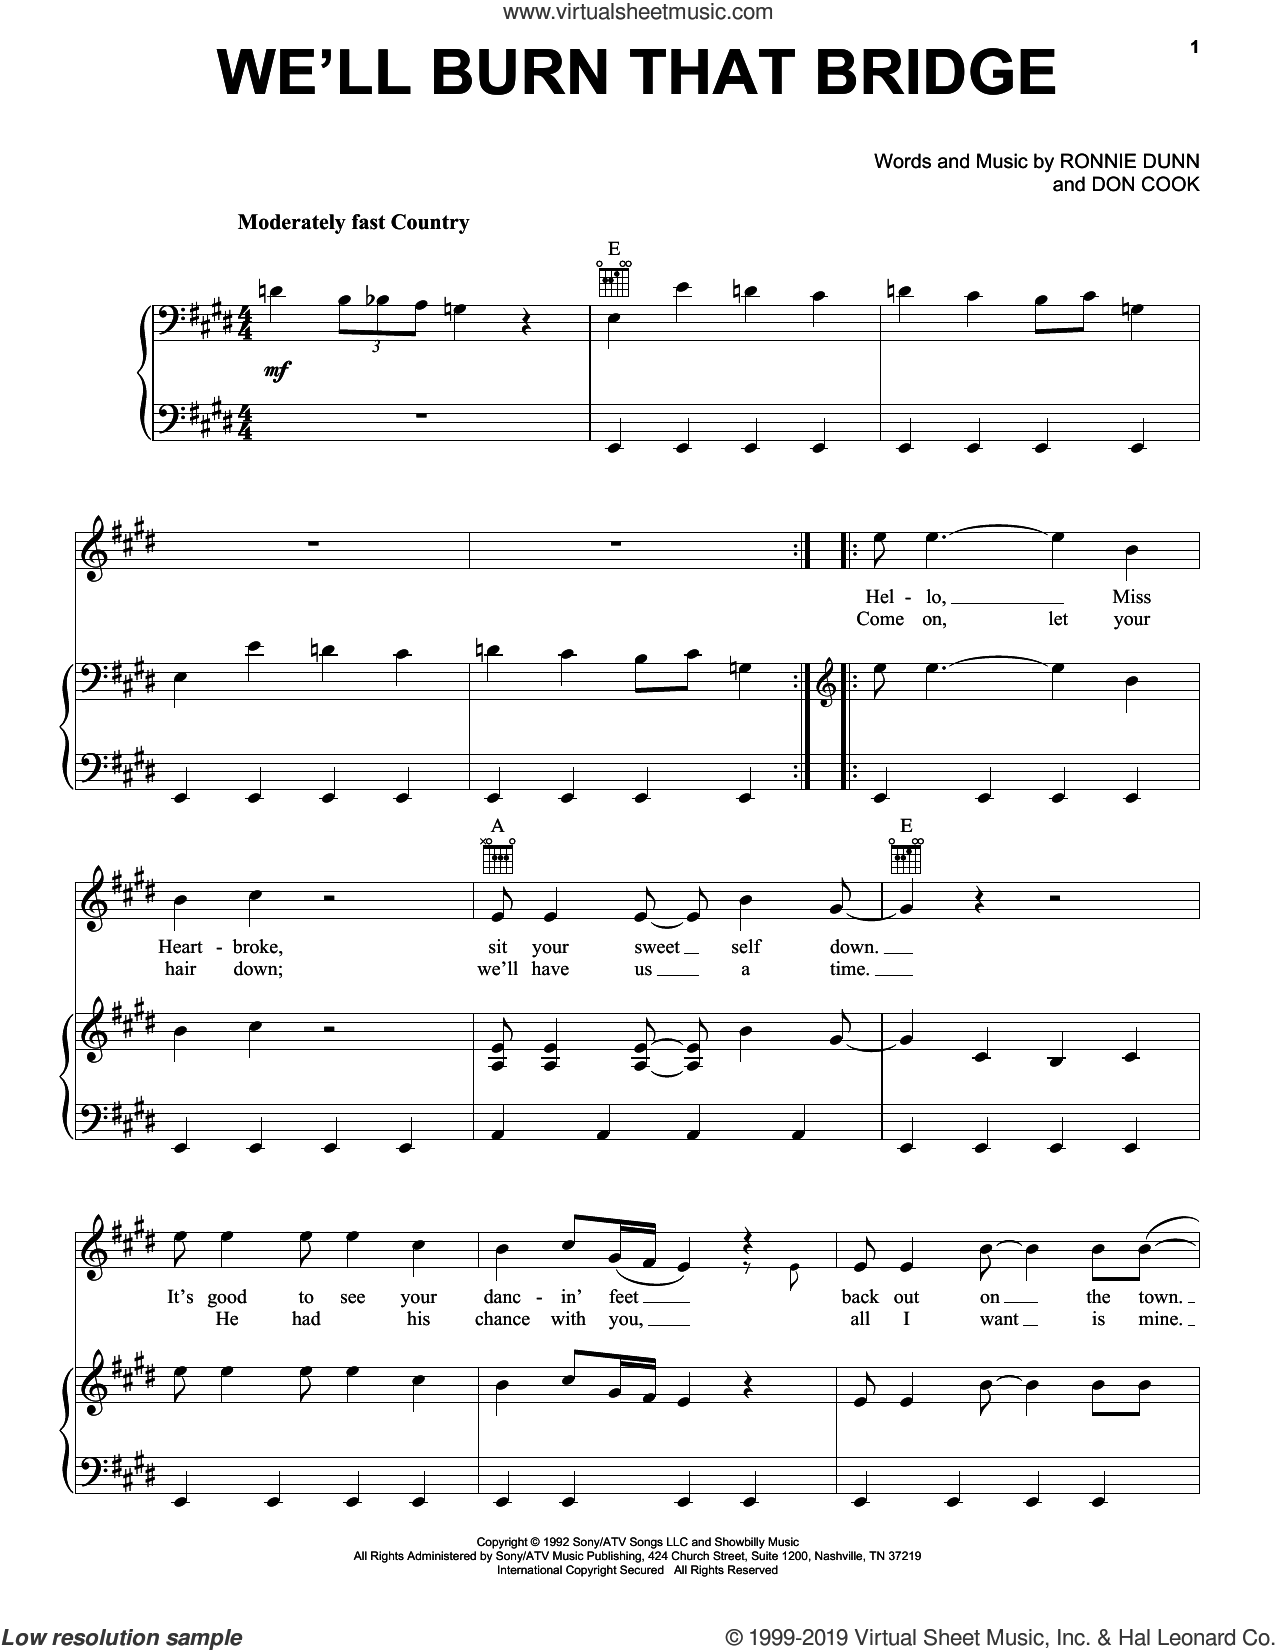 We'll Burn That Bridge sheet music for voice, piano or guitar by Brooks & Dunn, Don Cook and Ronnie Dunn, intermediate skill level